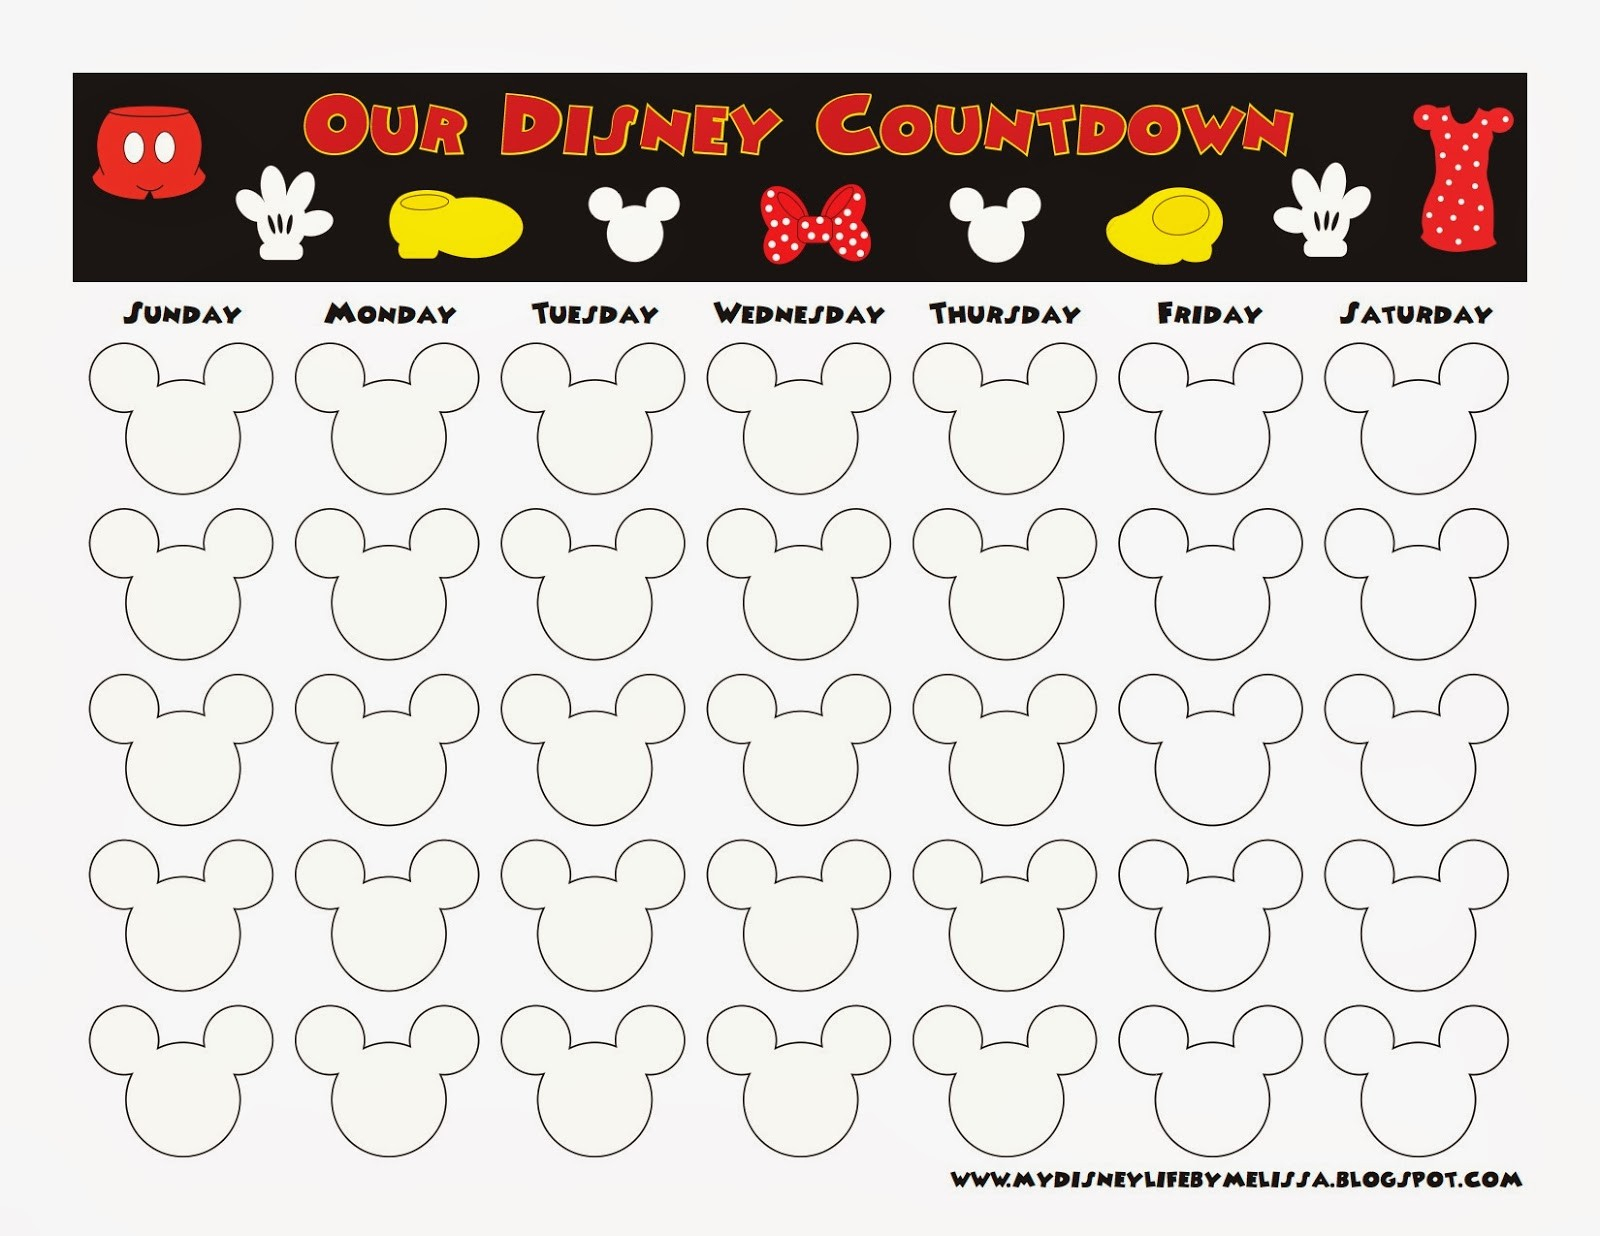 Awesome Countdown Calendar Printable | Free Printable